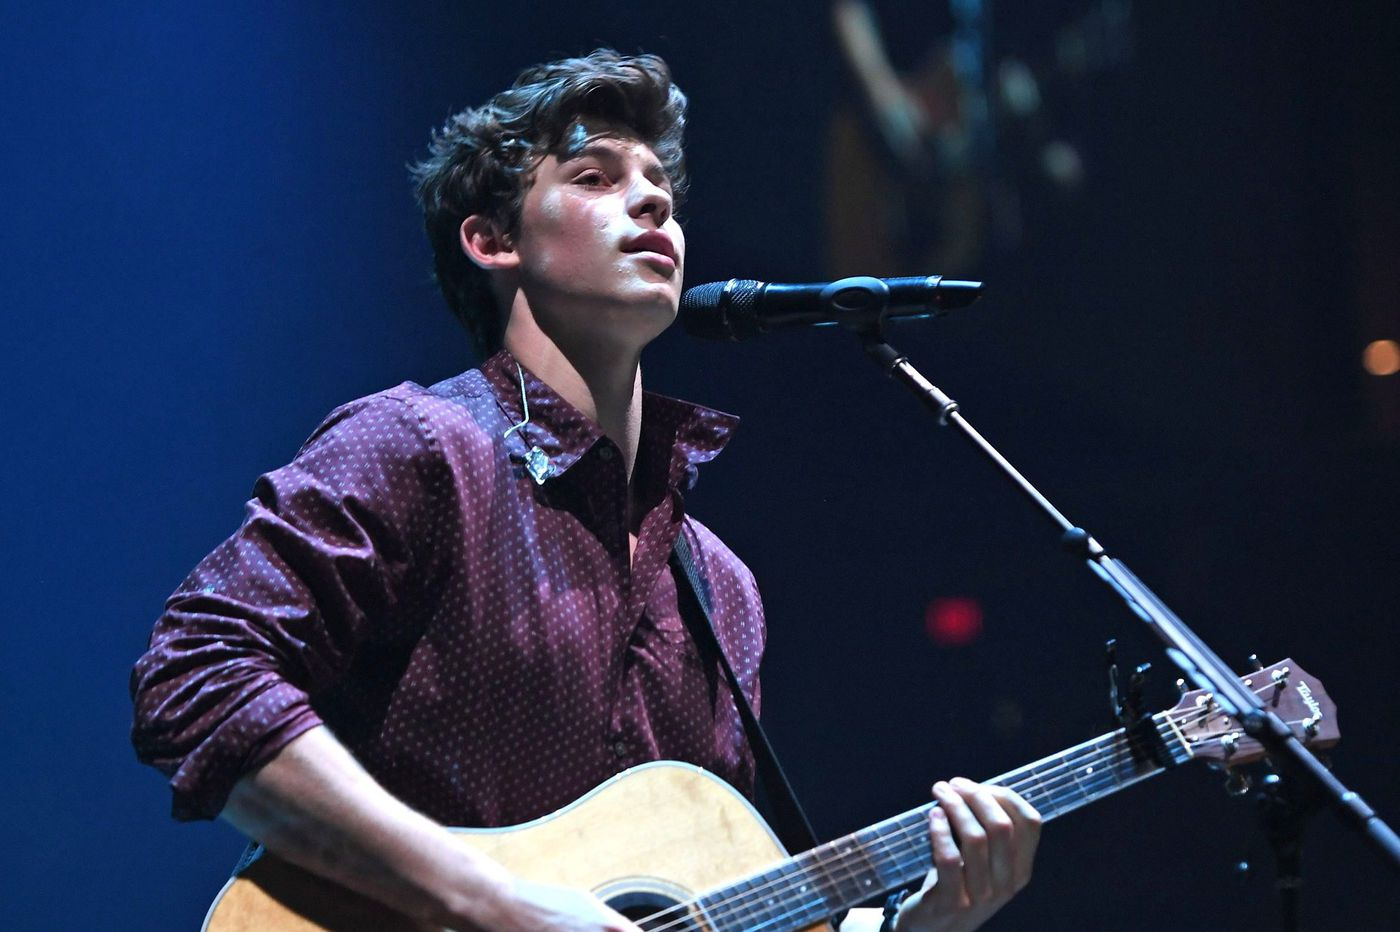 Shawn Mendes is performing a free concert in Philly because the Eagles won the Super Bowl